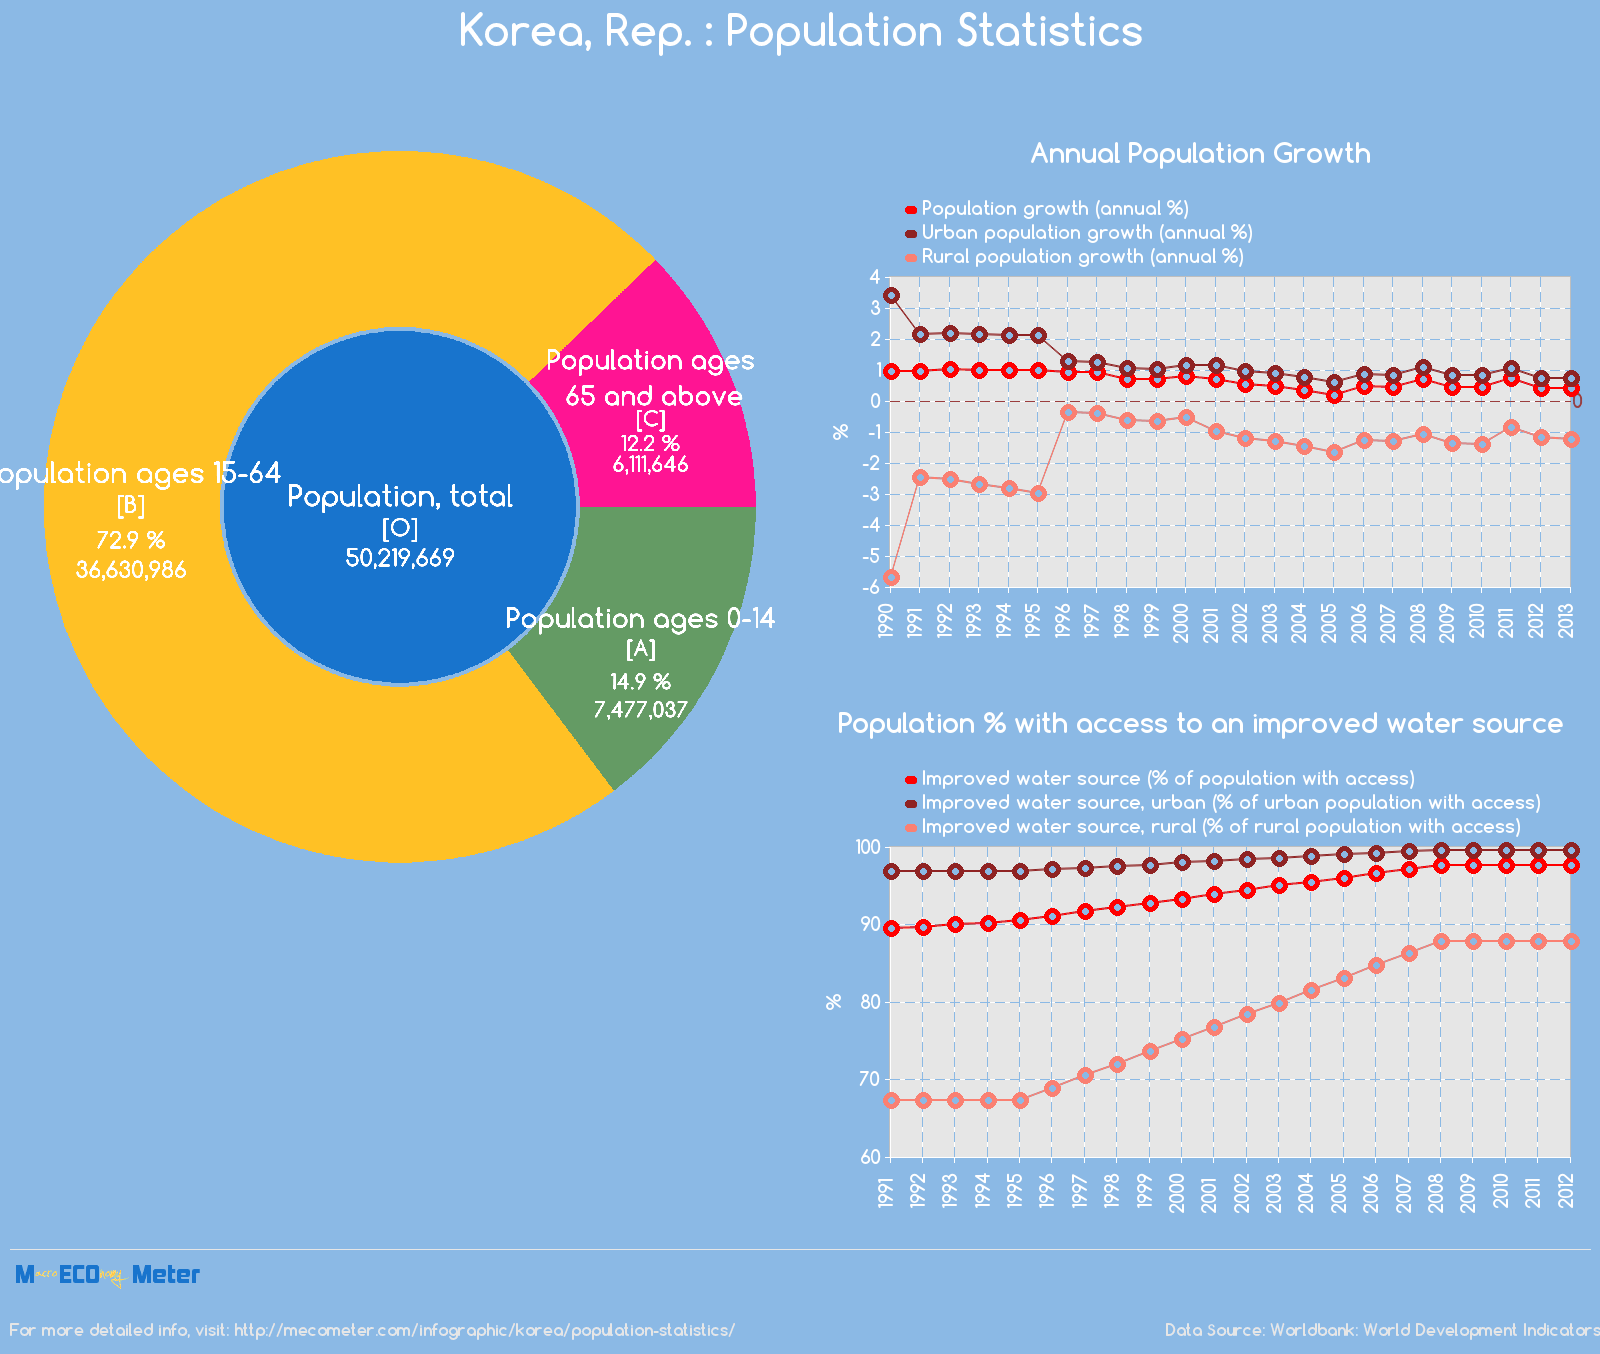 Korea, Rep. : Population Statistics